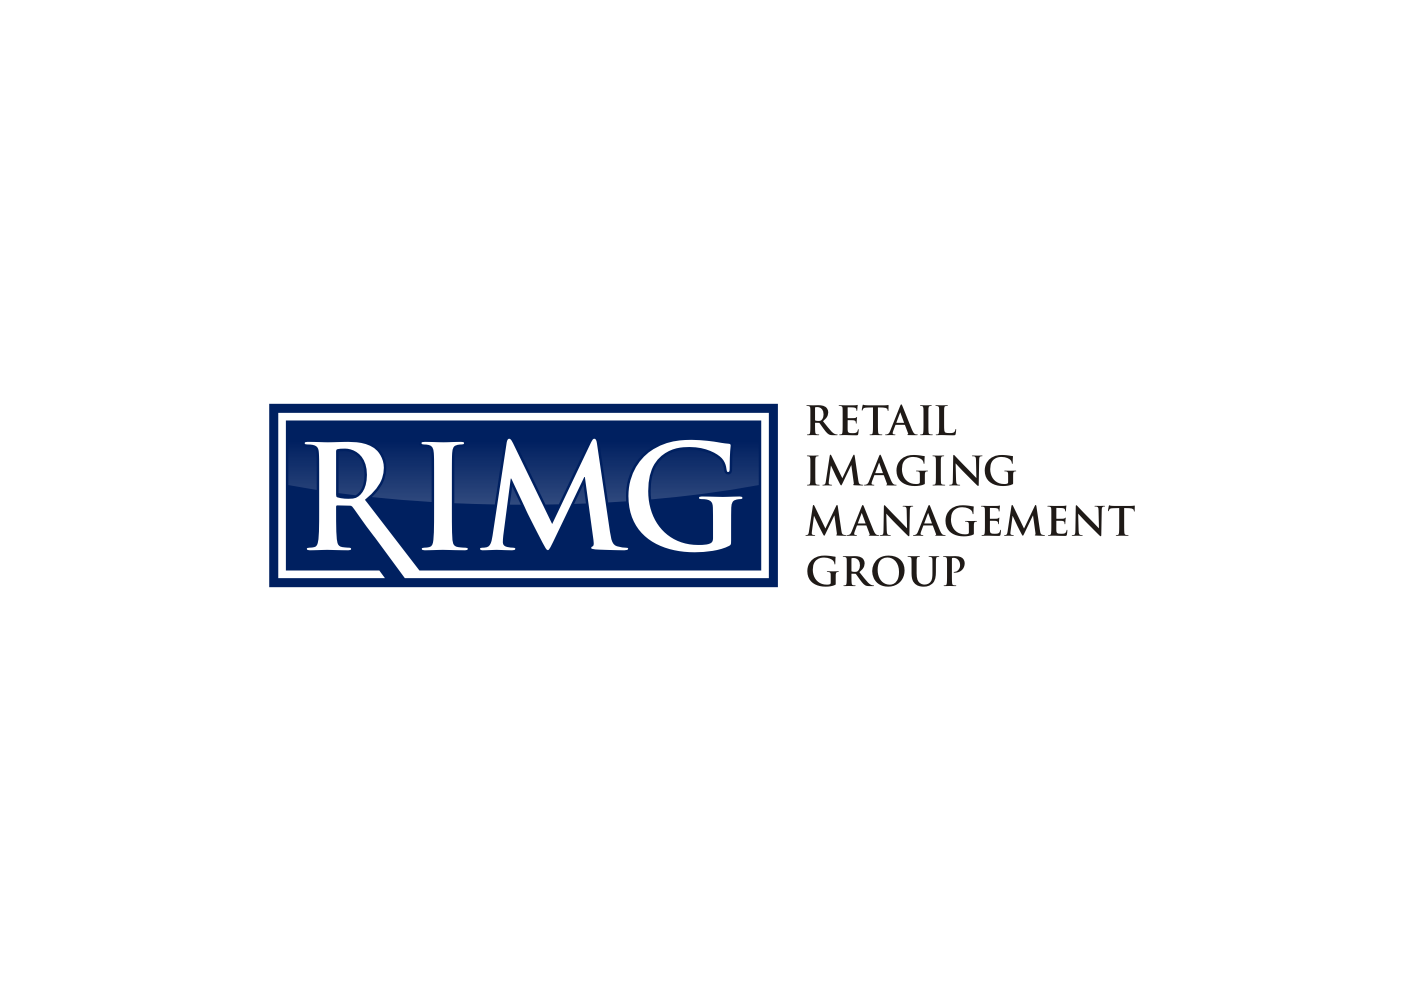 Logo Design by Ekarini Puspitasari - Entry No. 8 in the Logo Design Contest Creative Logo Design for Retail Imaging Management Group (R.I.M.G.).